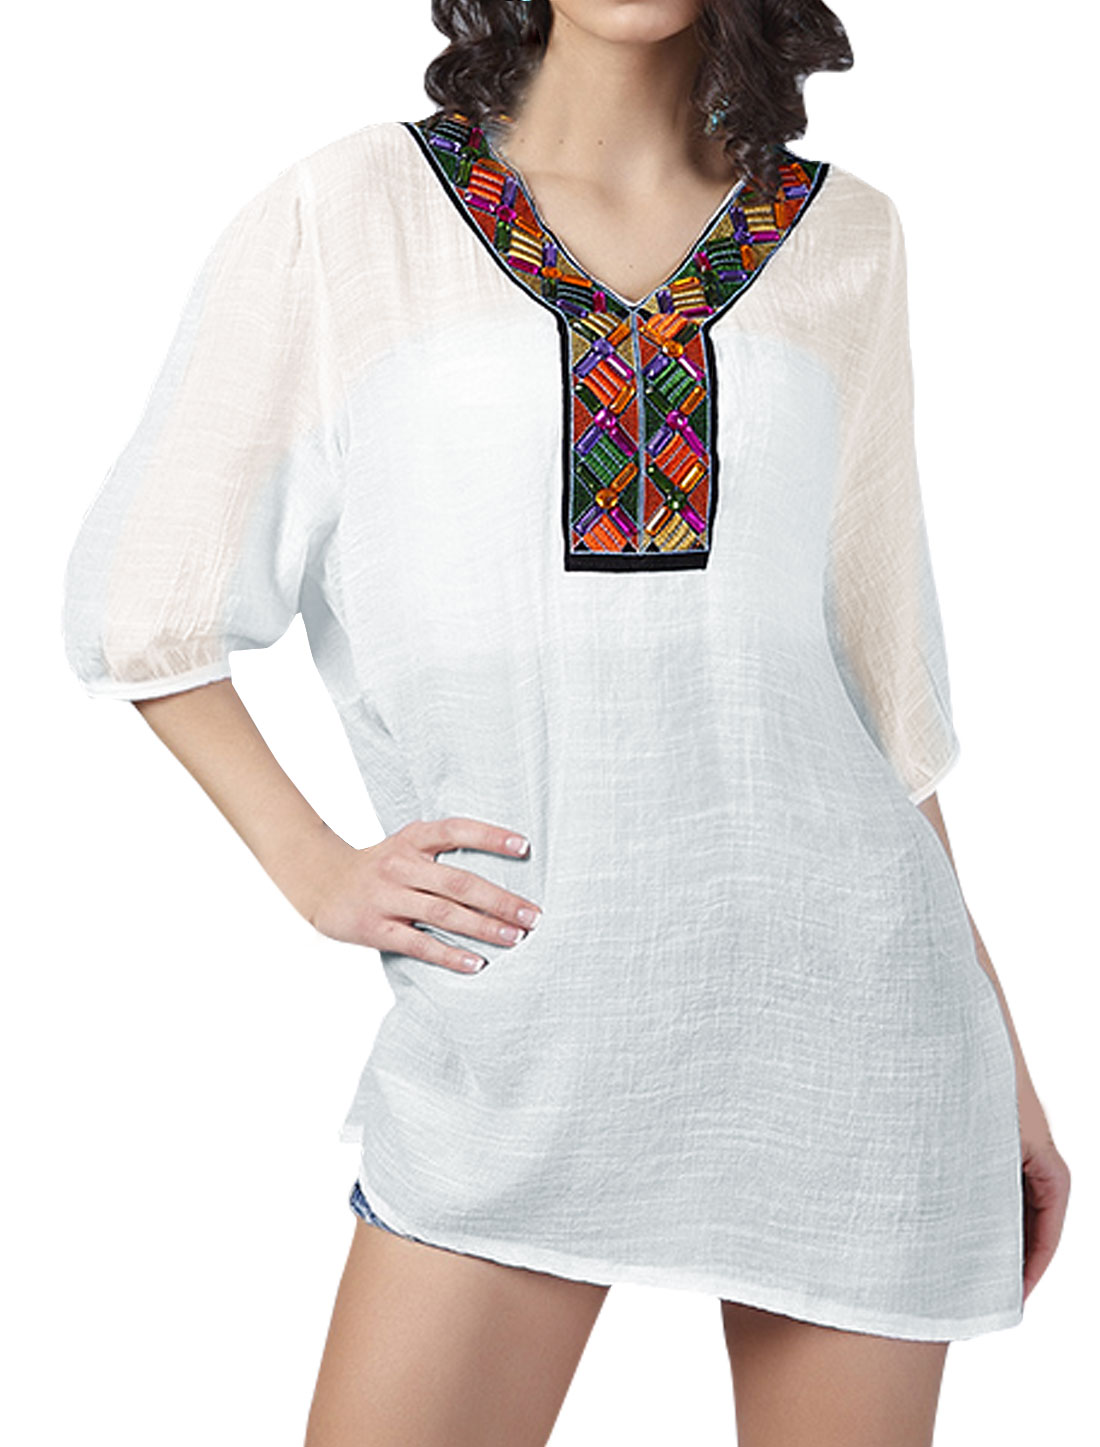 Women 1/2 Sleeves Embroidery Rhinestone Decor Tunic Top White S